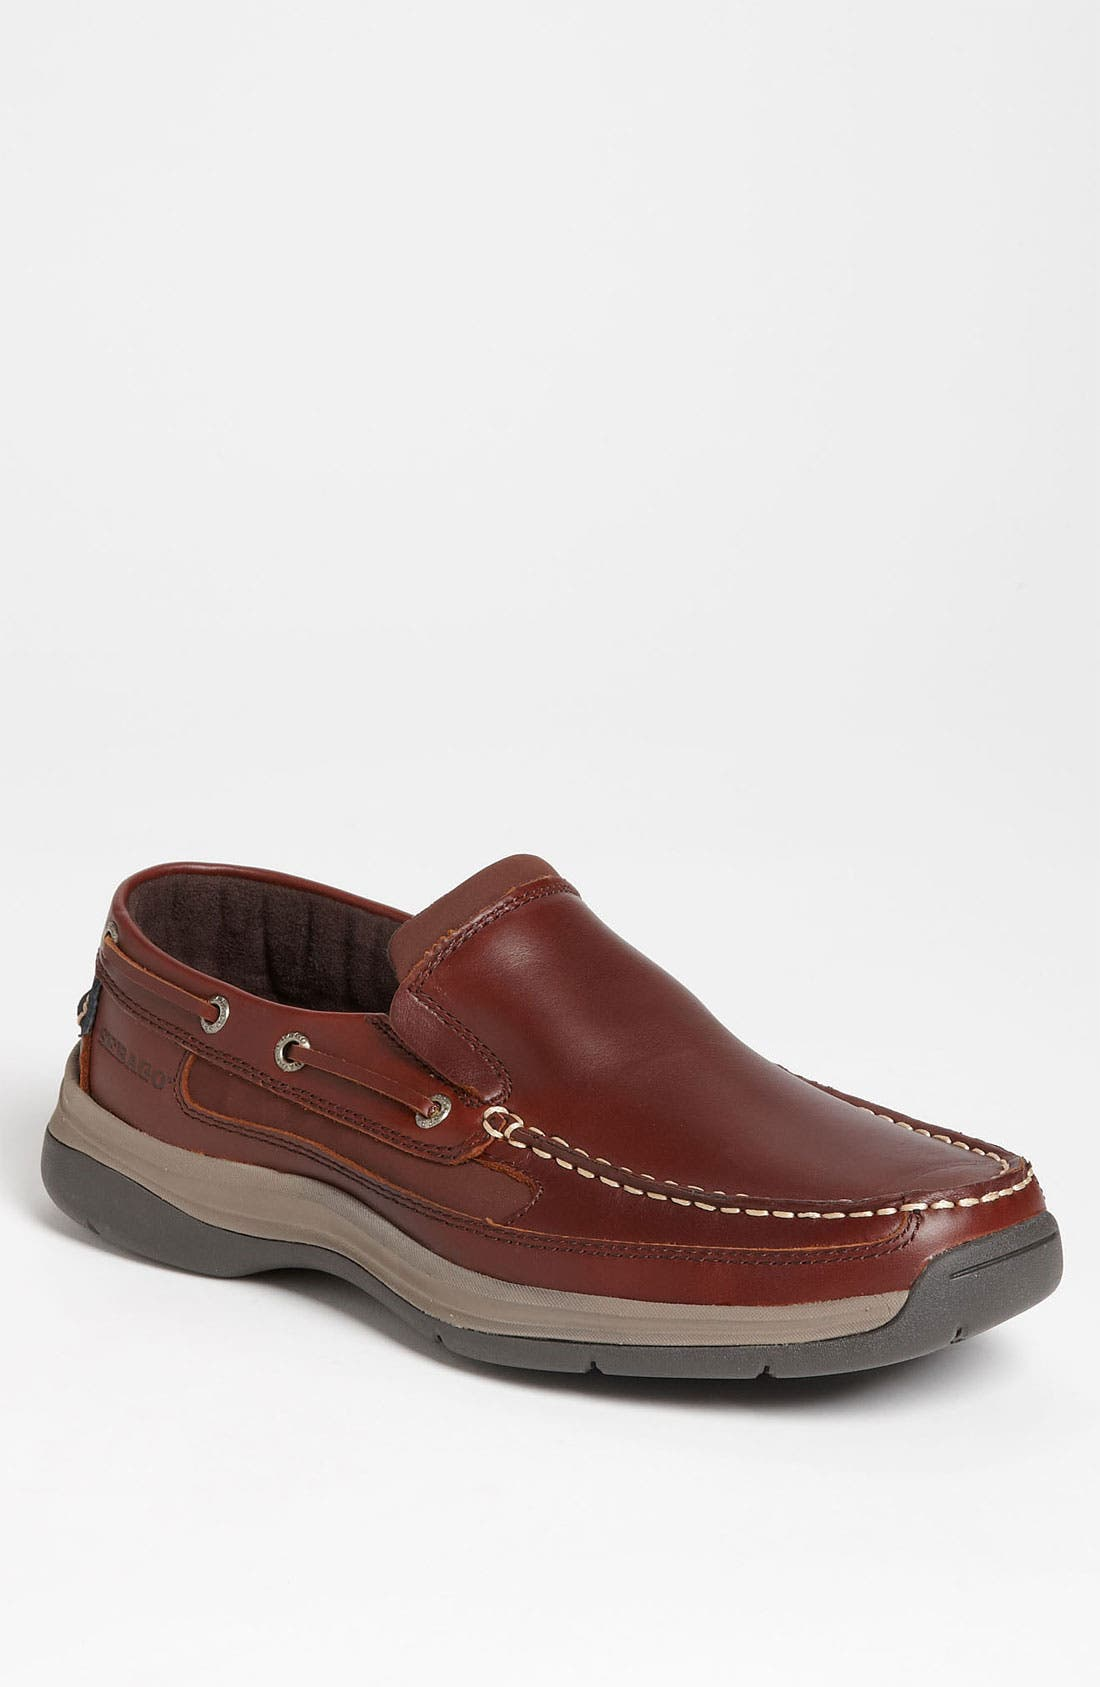 Alternate Image 1 Selected - Sebago 'Bowman' Boat Shoe (Online Only)